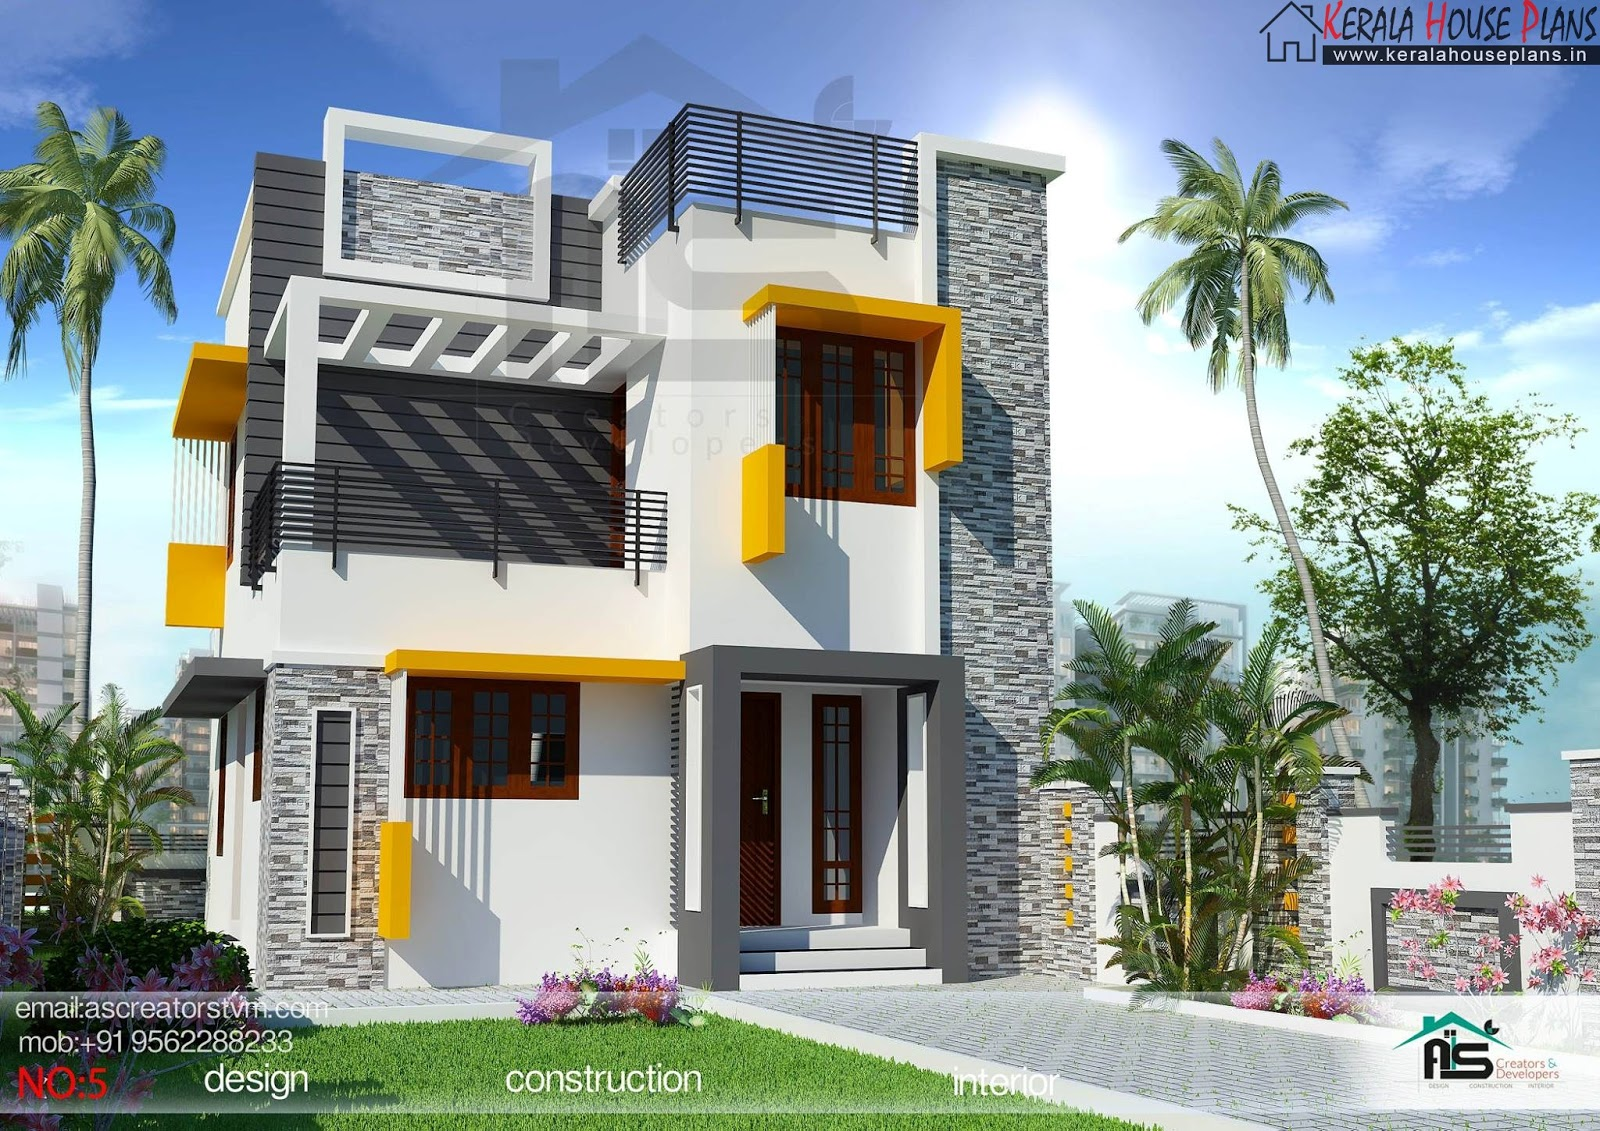 Three bedroom house plan kerala style kerala house plans for House designs magazine